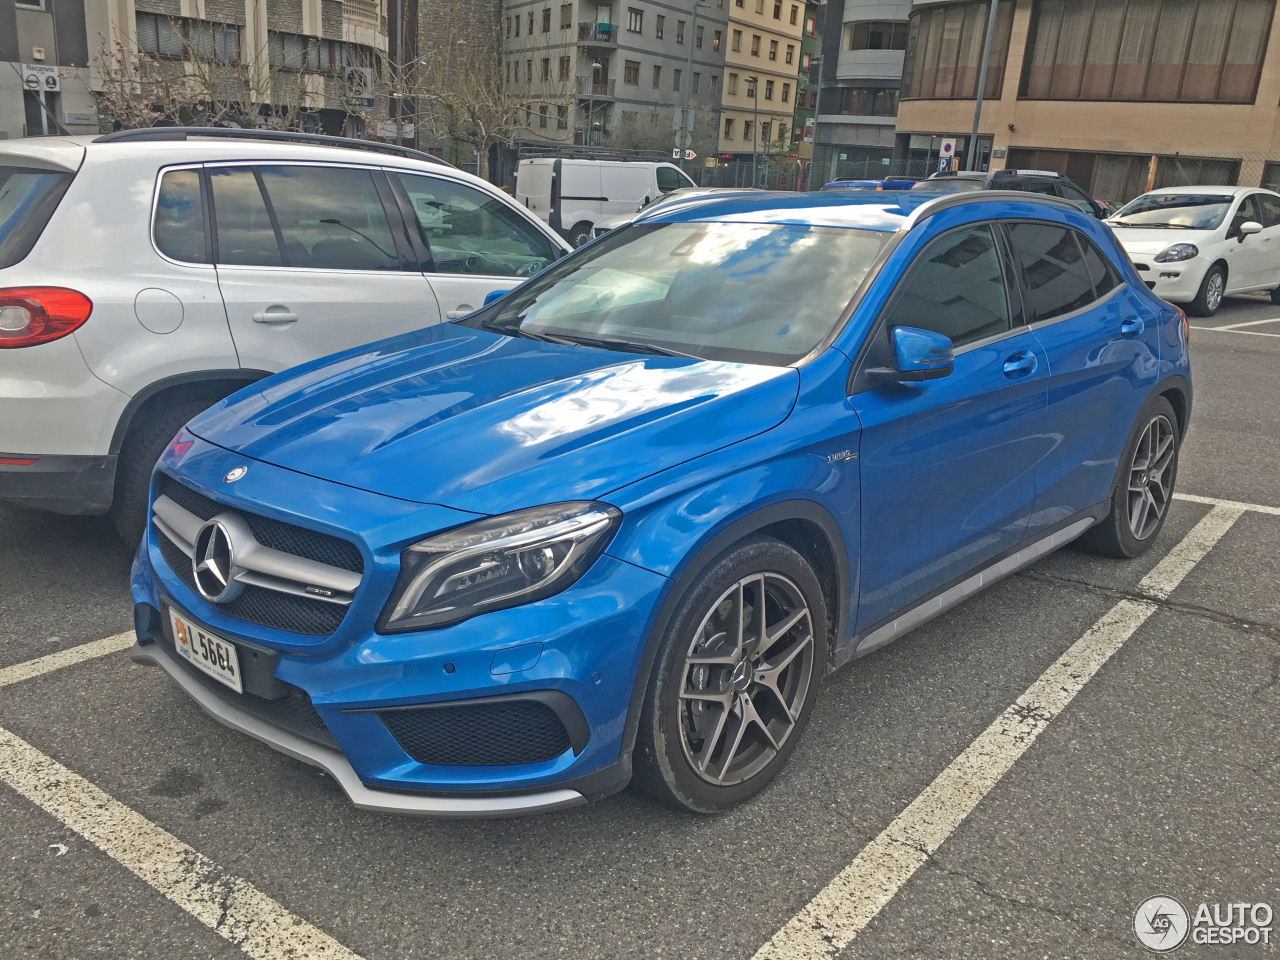 Mercedes benz gla 45 amg x156 28 april 2016 autogespot for Mercedes benz gla 45 amg